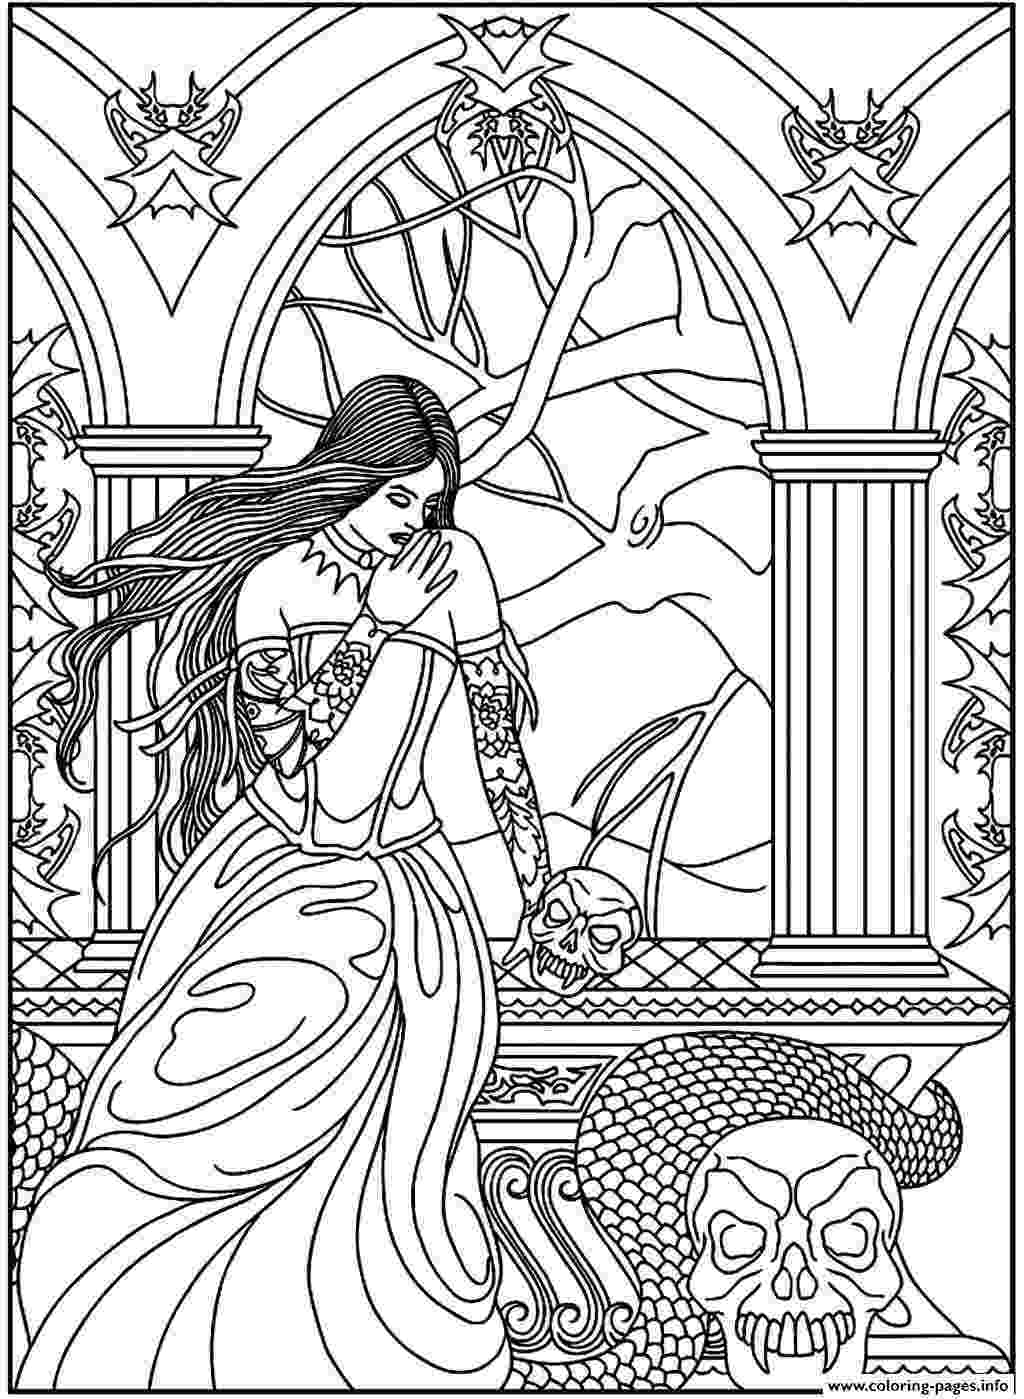 coloring pages fantasy halloween selina fenech fantasy coloring pages for pages coloring fantasy